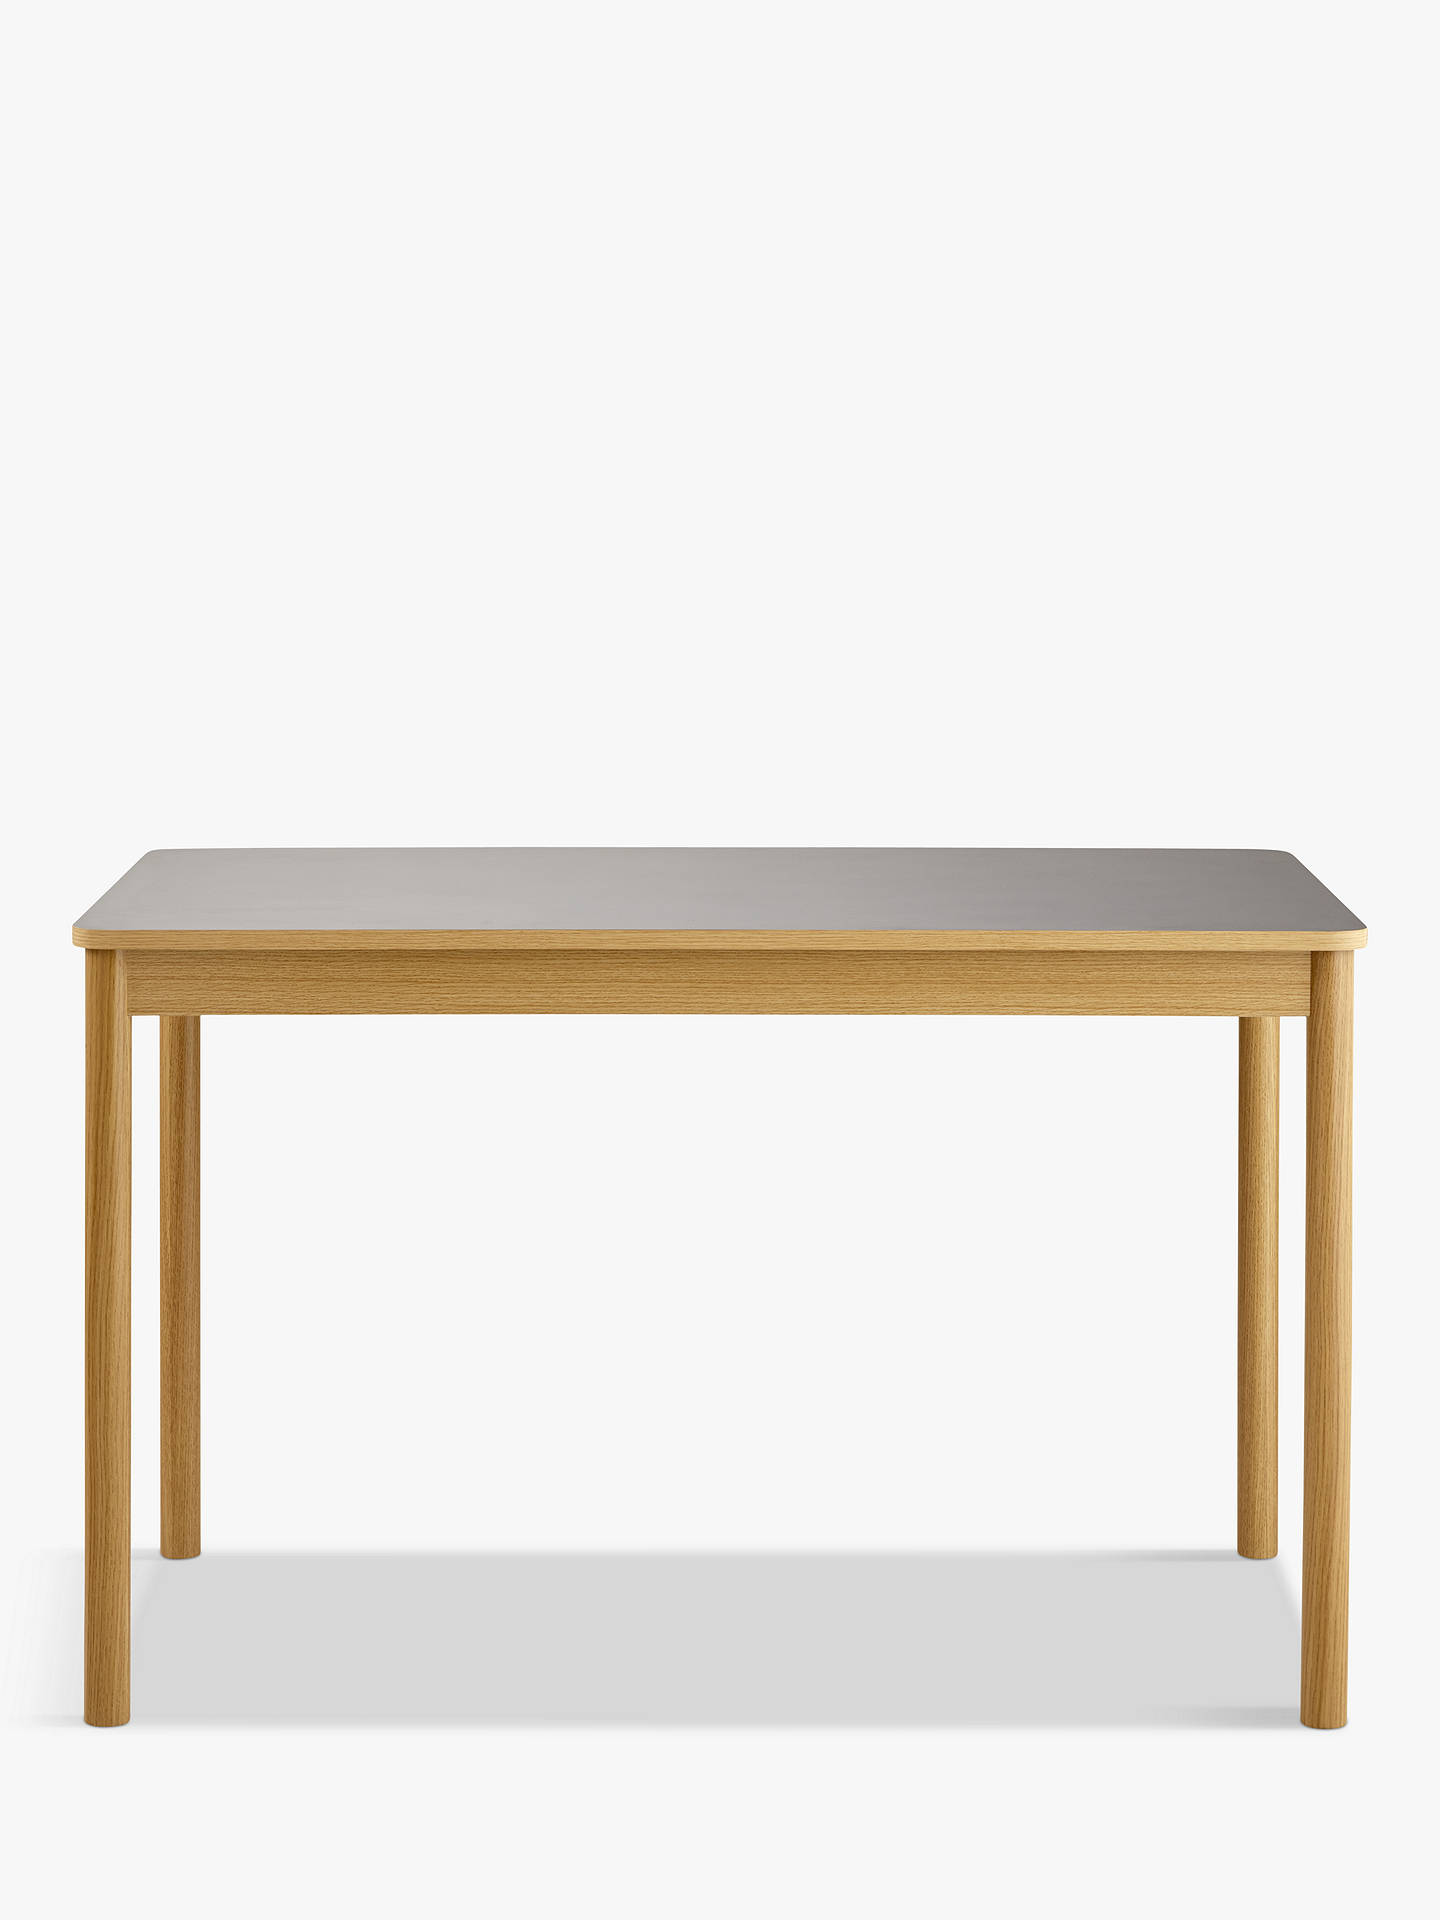 Excellent John Lewis Partners Peyton 4 Seater Kitchen Dining Table Theyellowbook Wood Chair Design Ideas Theyellowbookinfo